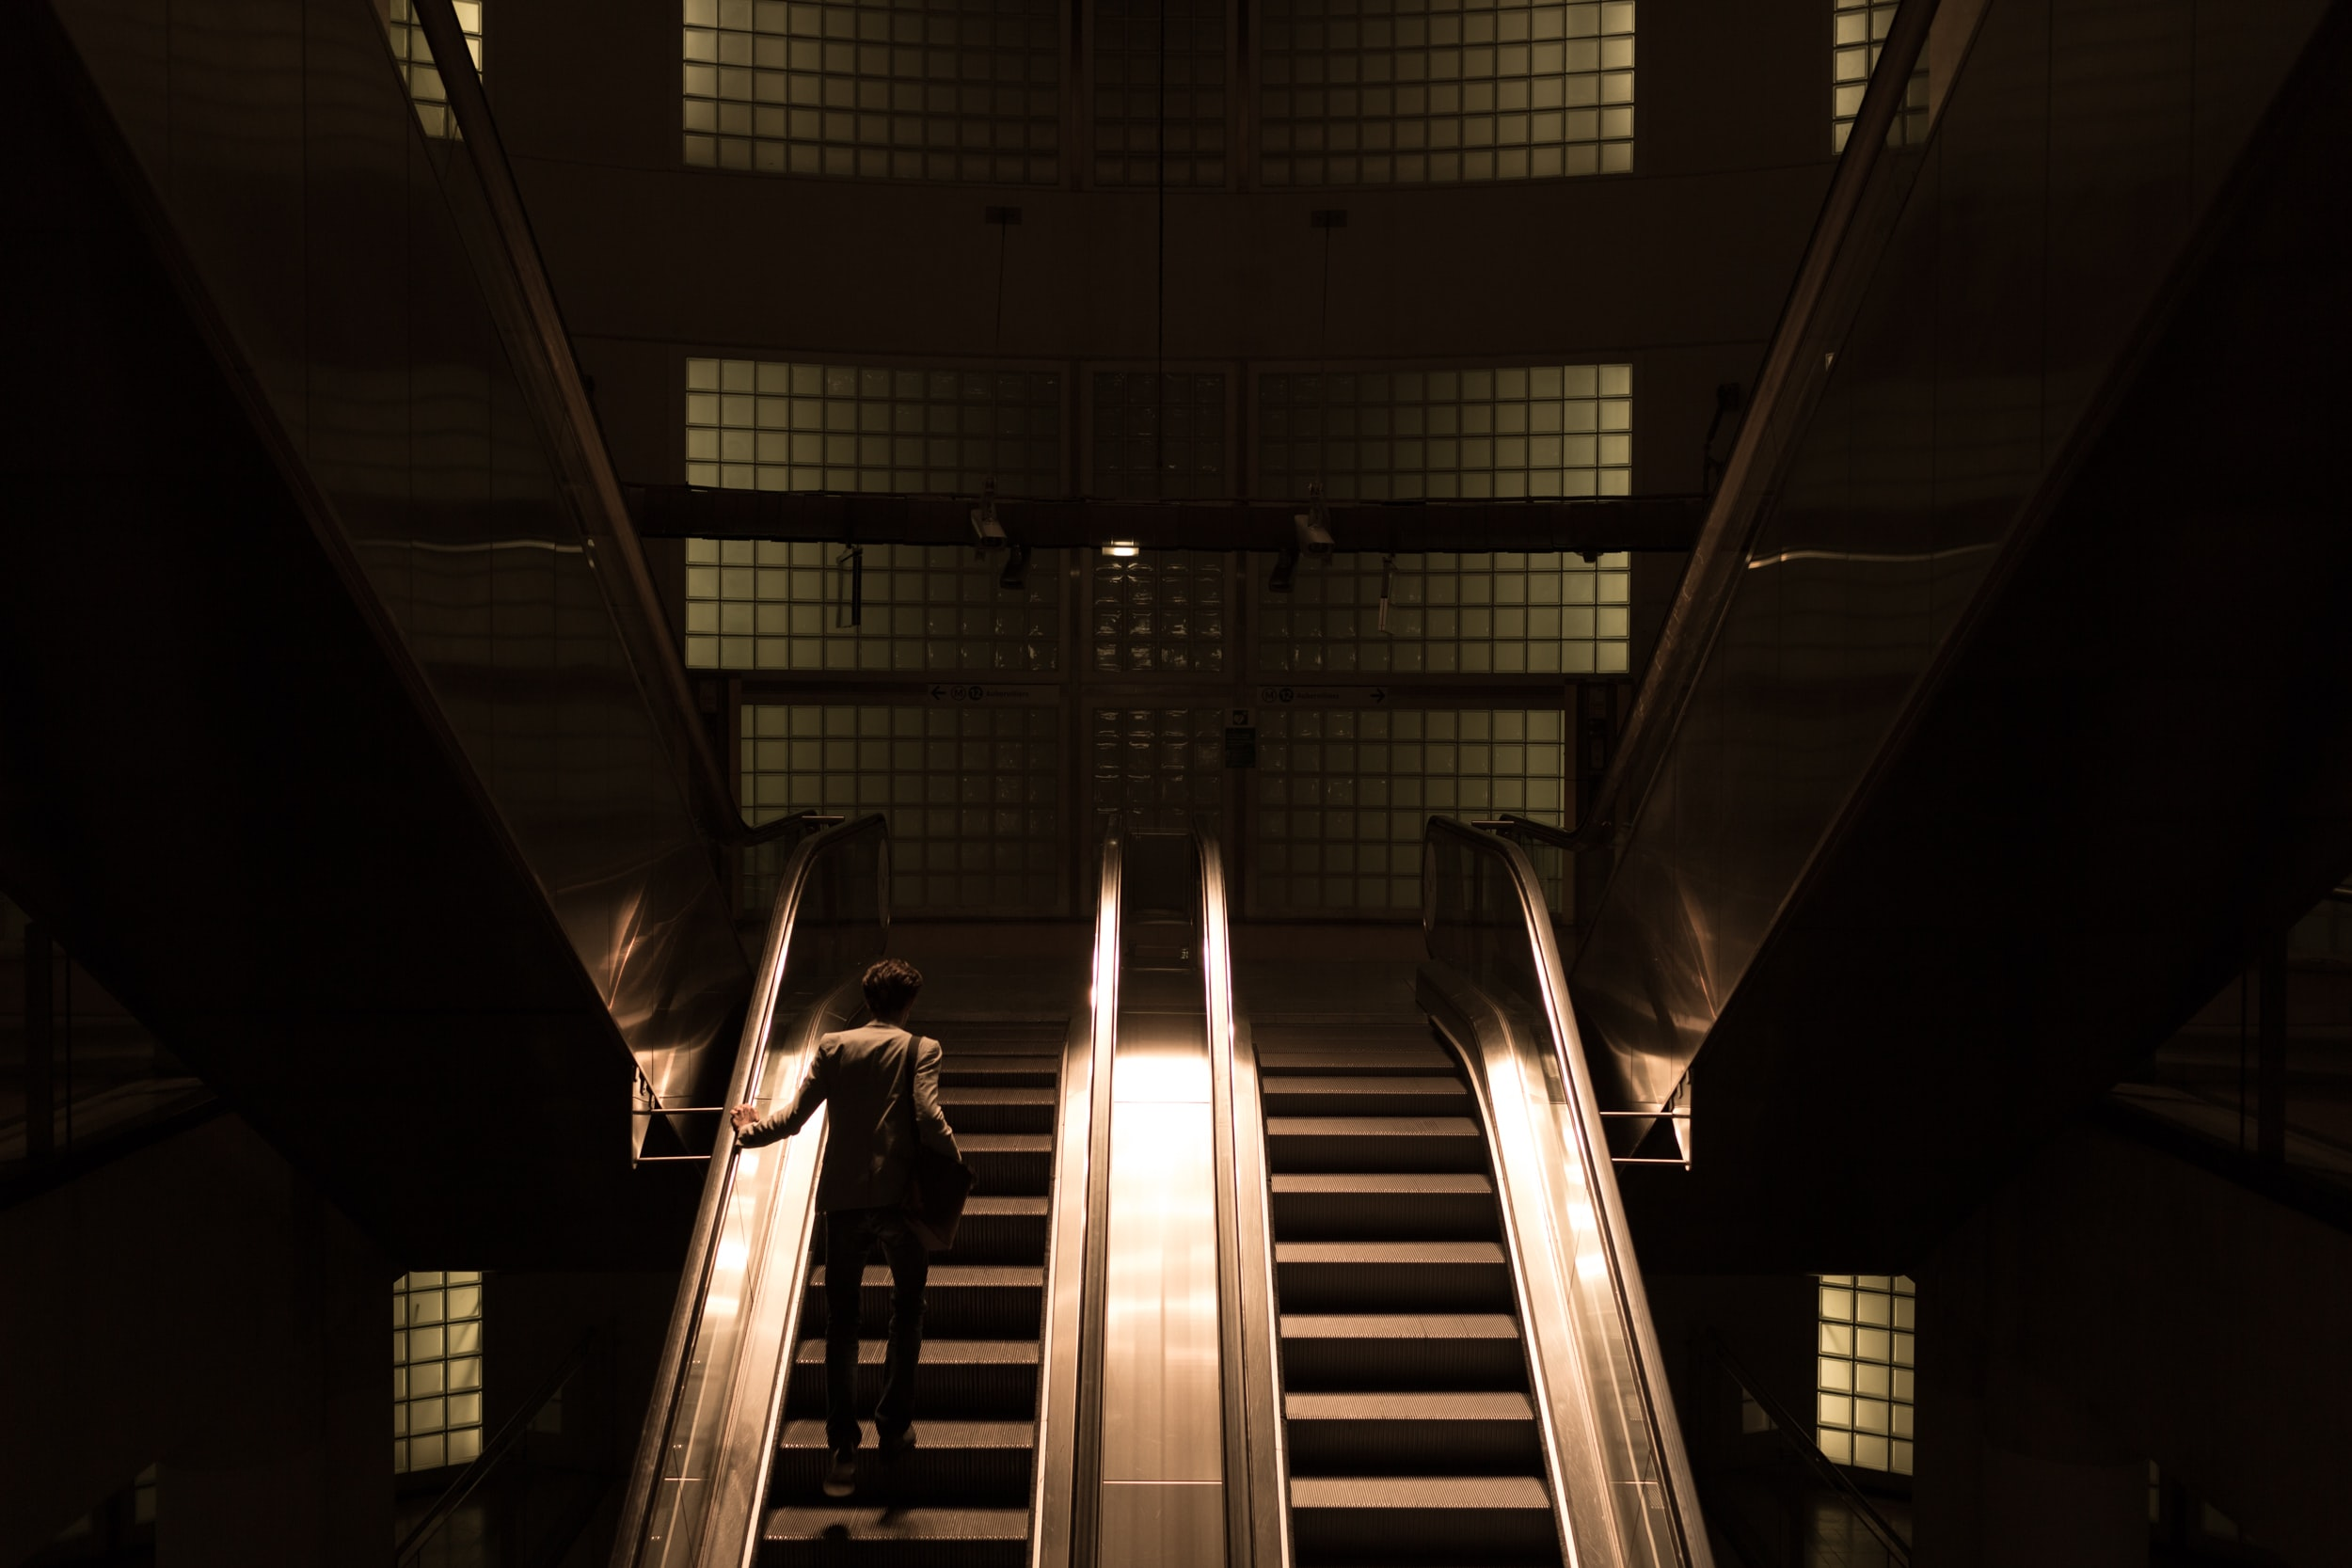 A shadowy shot of a man riding up a pair of escalators in the subway